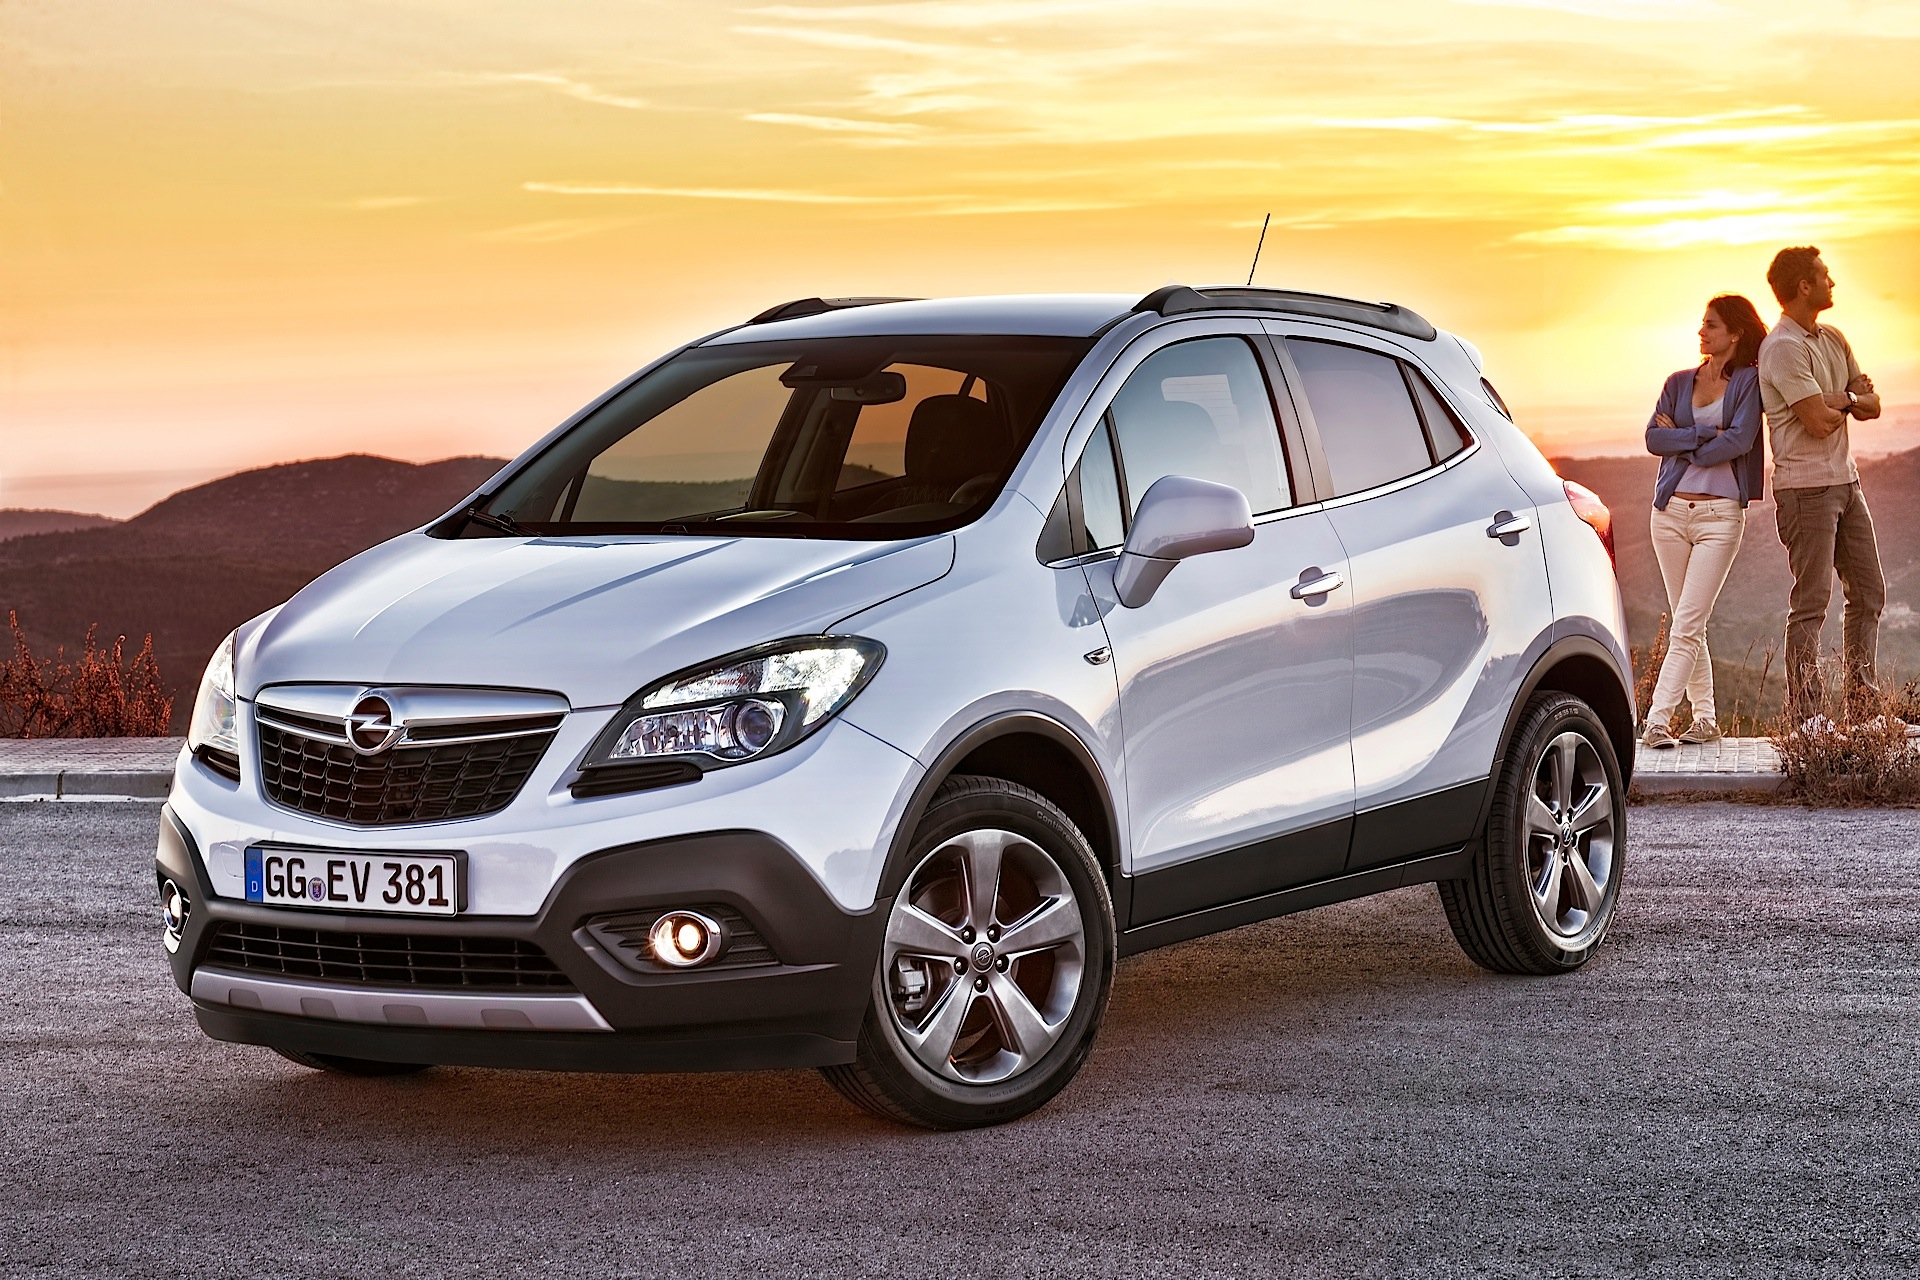 opel mokka specs photos 2012 2013 2014 2015 2016 autoevolution. Black Bedroom Furniture Sets. Home Design Ideas